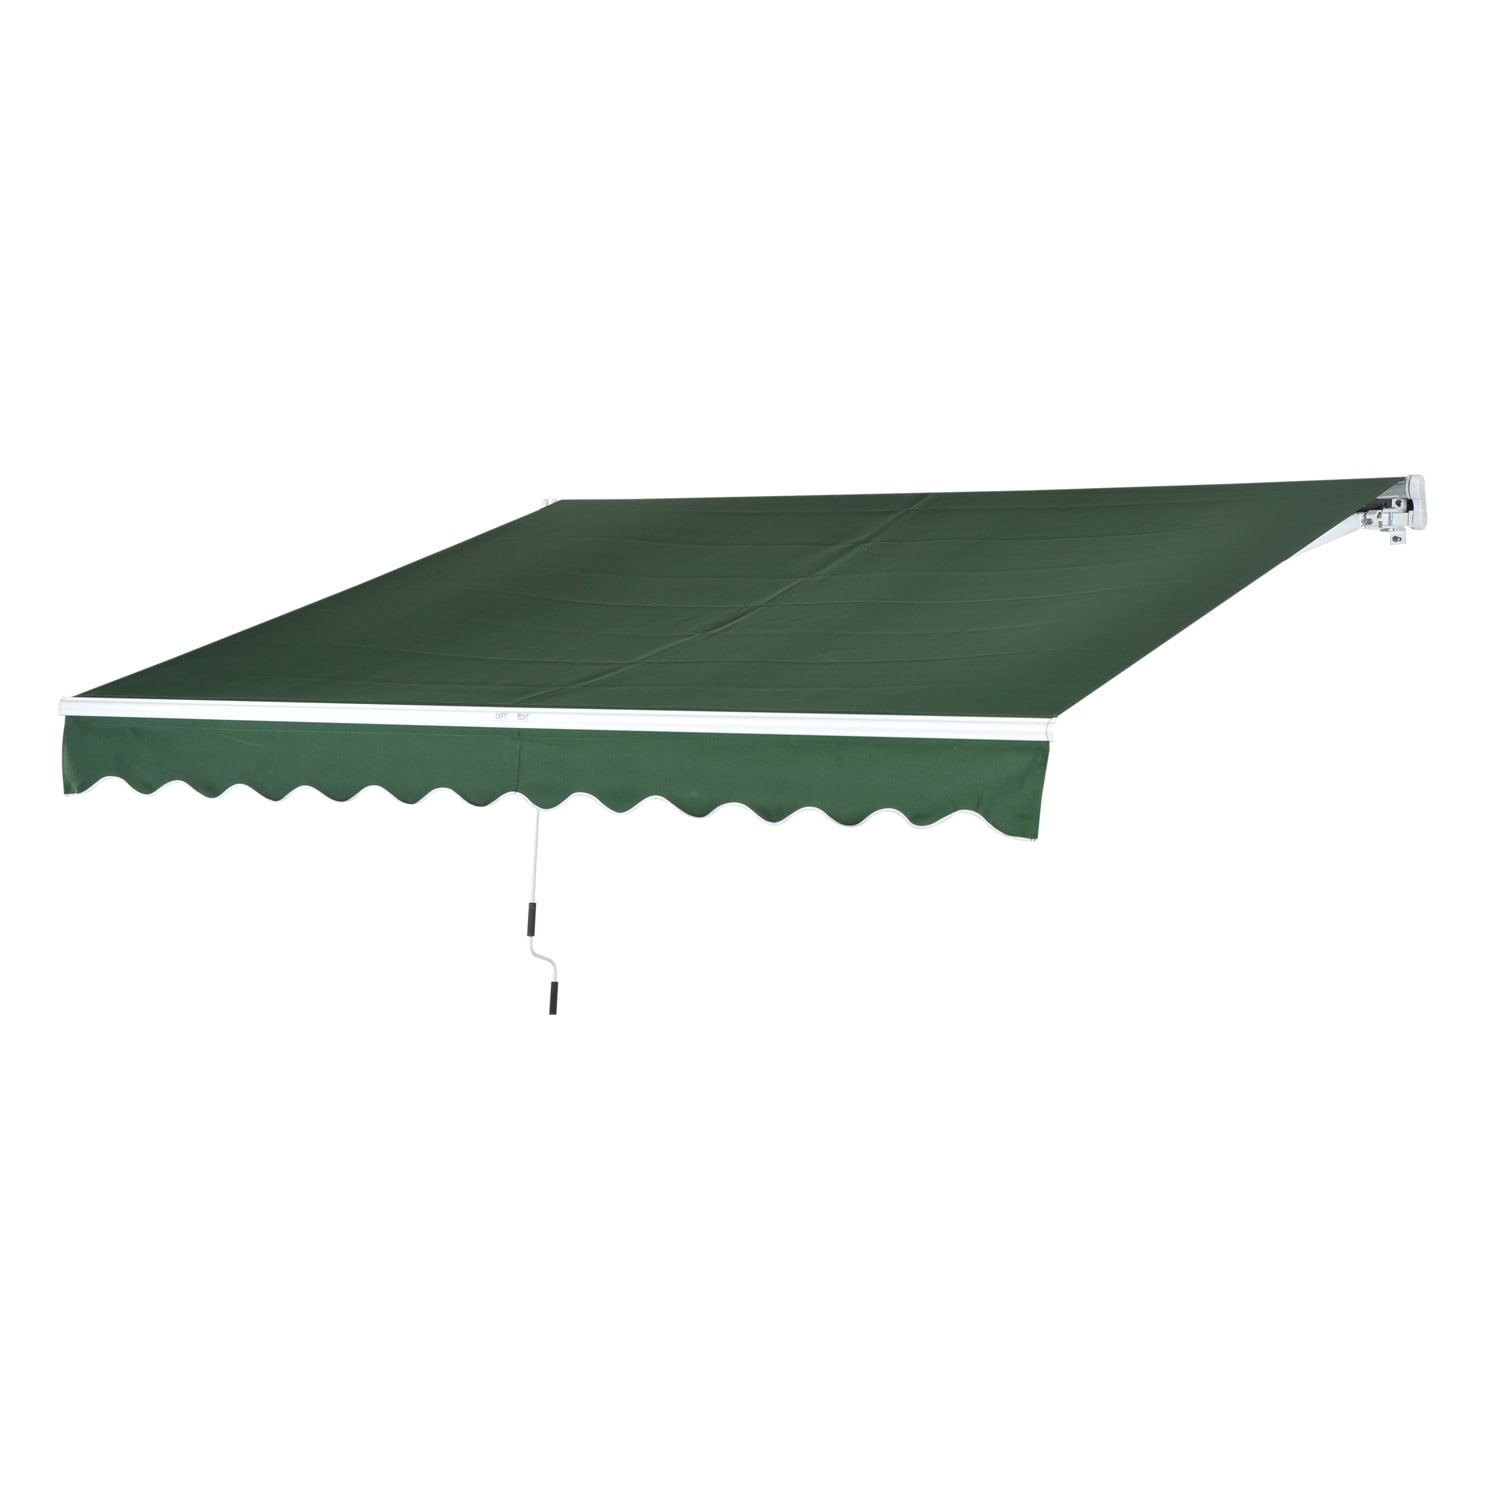 green amazon com sun retractable manual awning garden outsunny shade outdoor dp patio